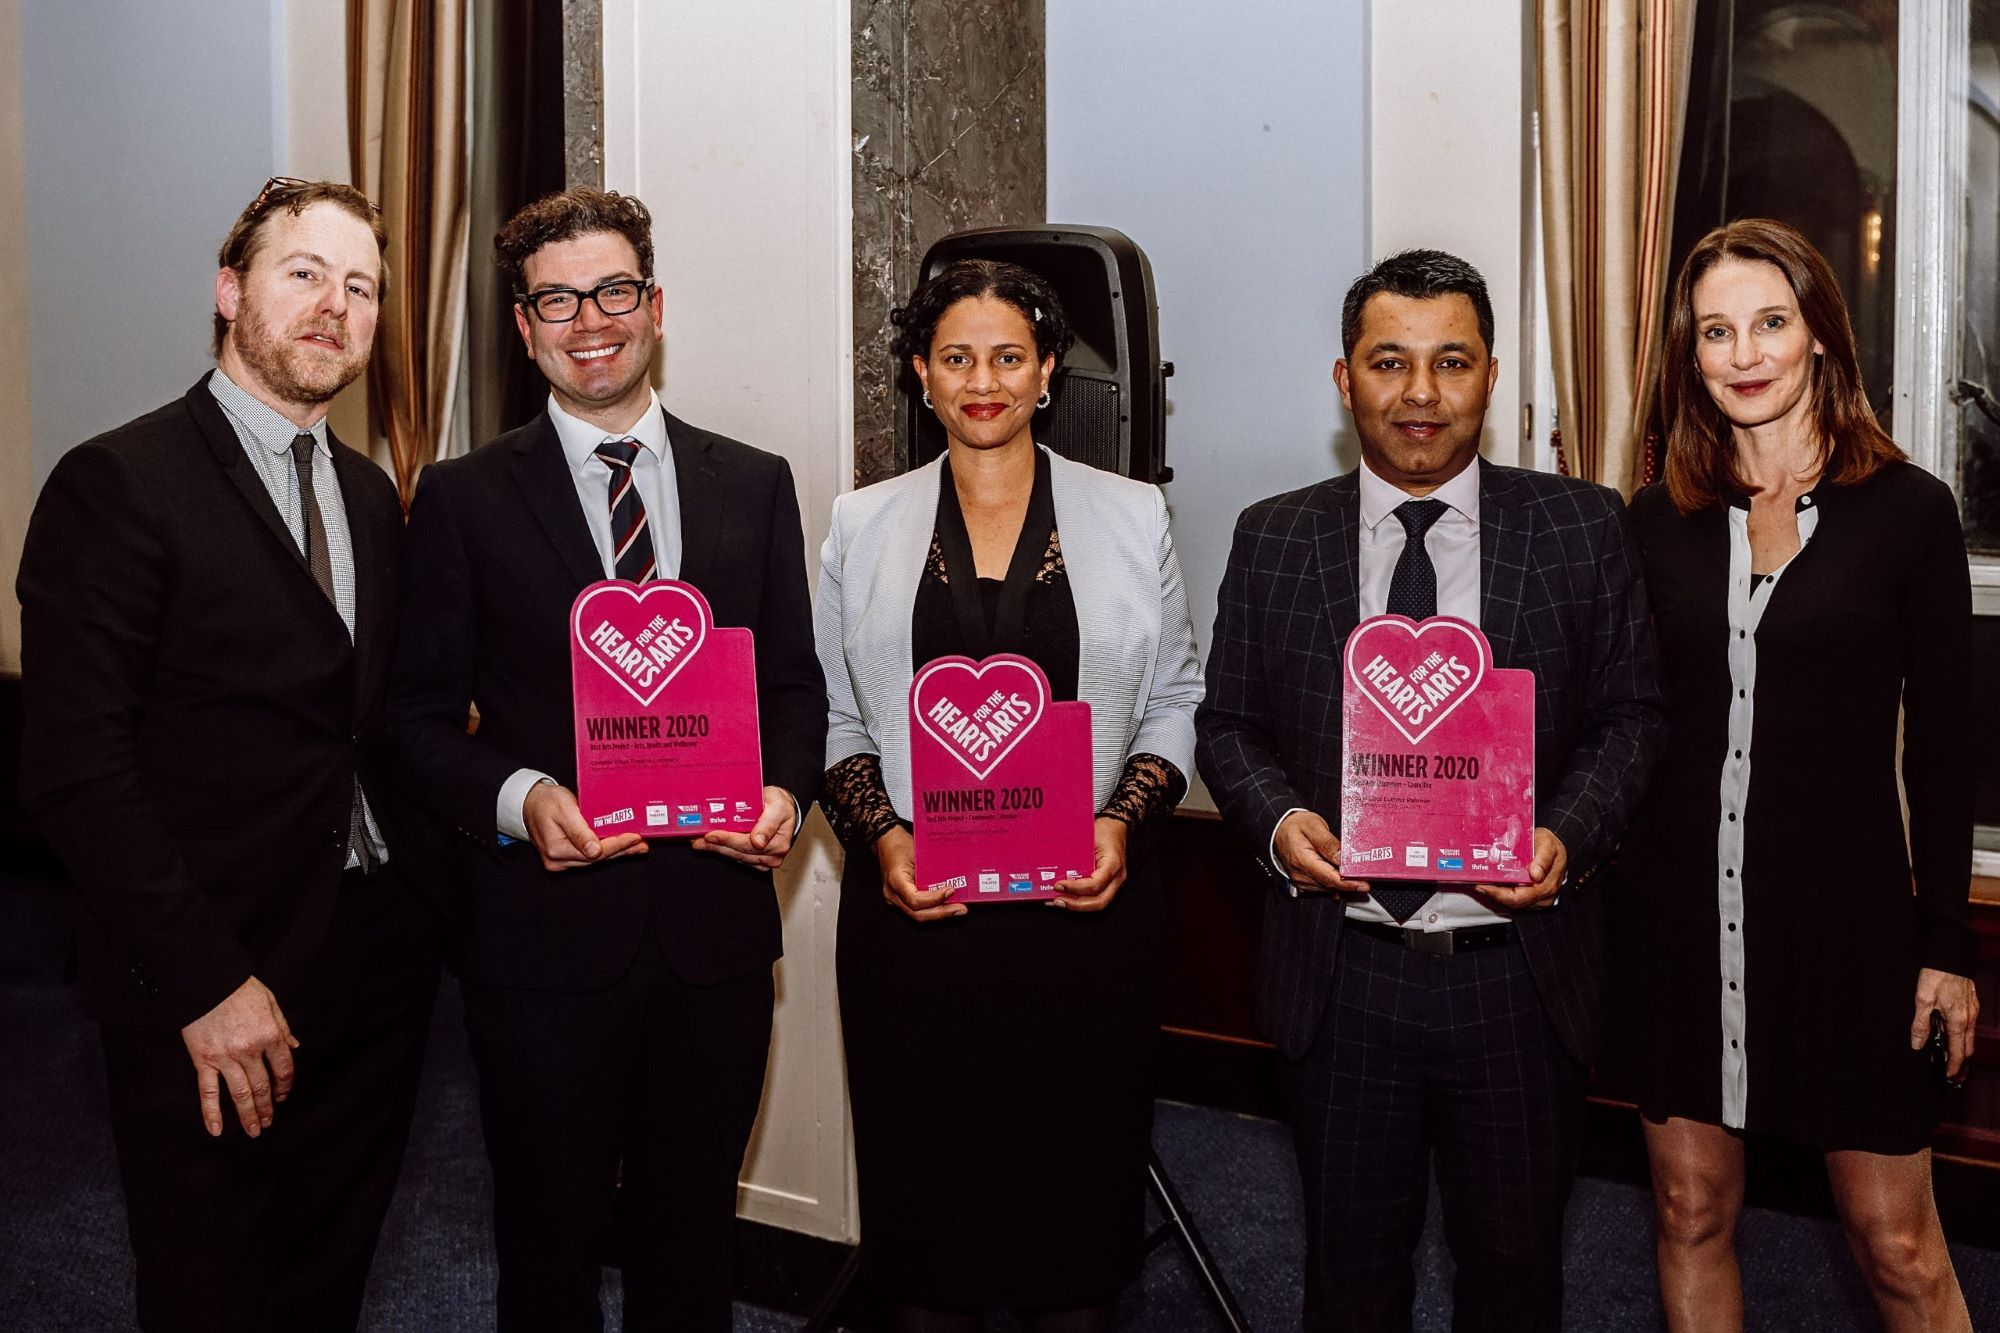 Samuel West and Susie Dent with Hearts for the Arts award winners 2020 - Matt Steinberg, Artistic Director of Outside Eddge Theatre Company; Hackney Council's Petra Roberts; Manchester City Council's Luthfur Rahman